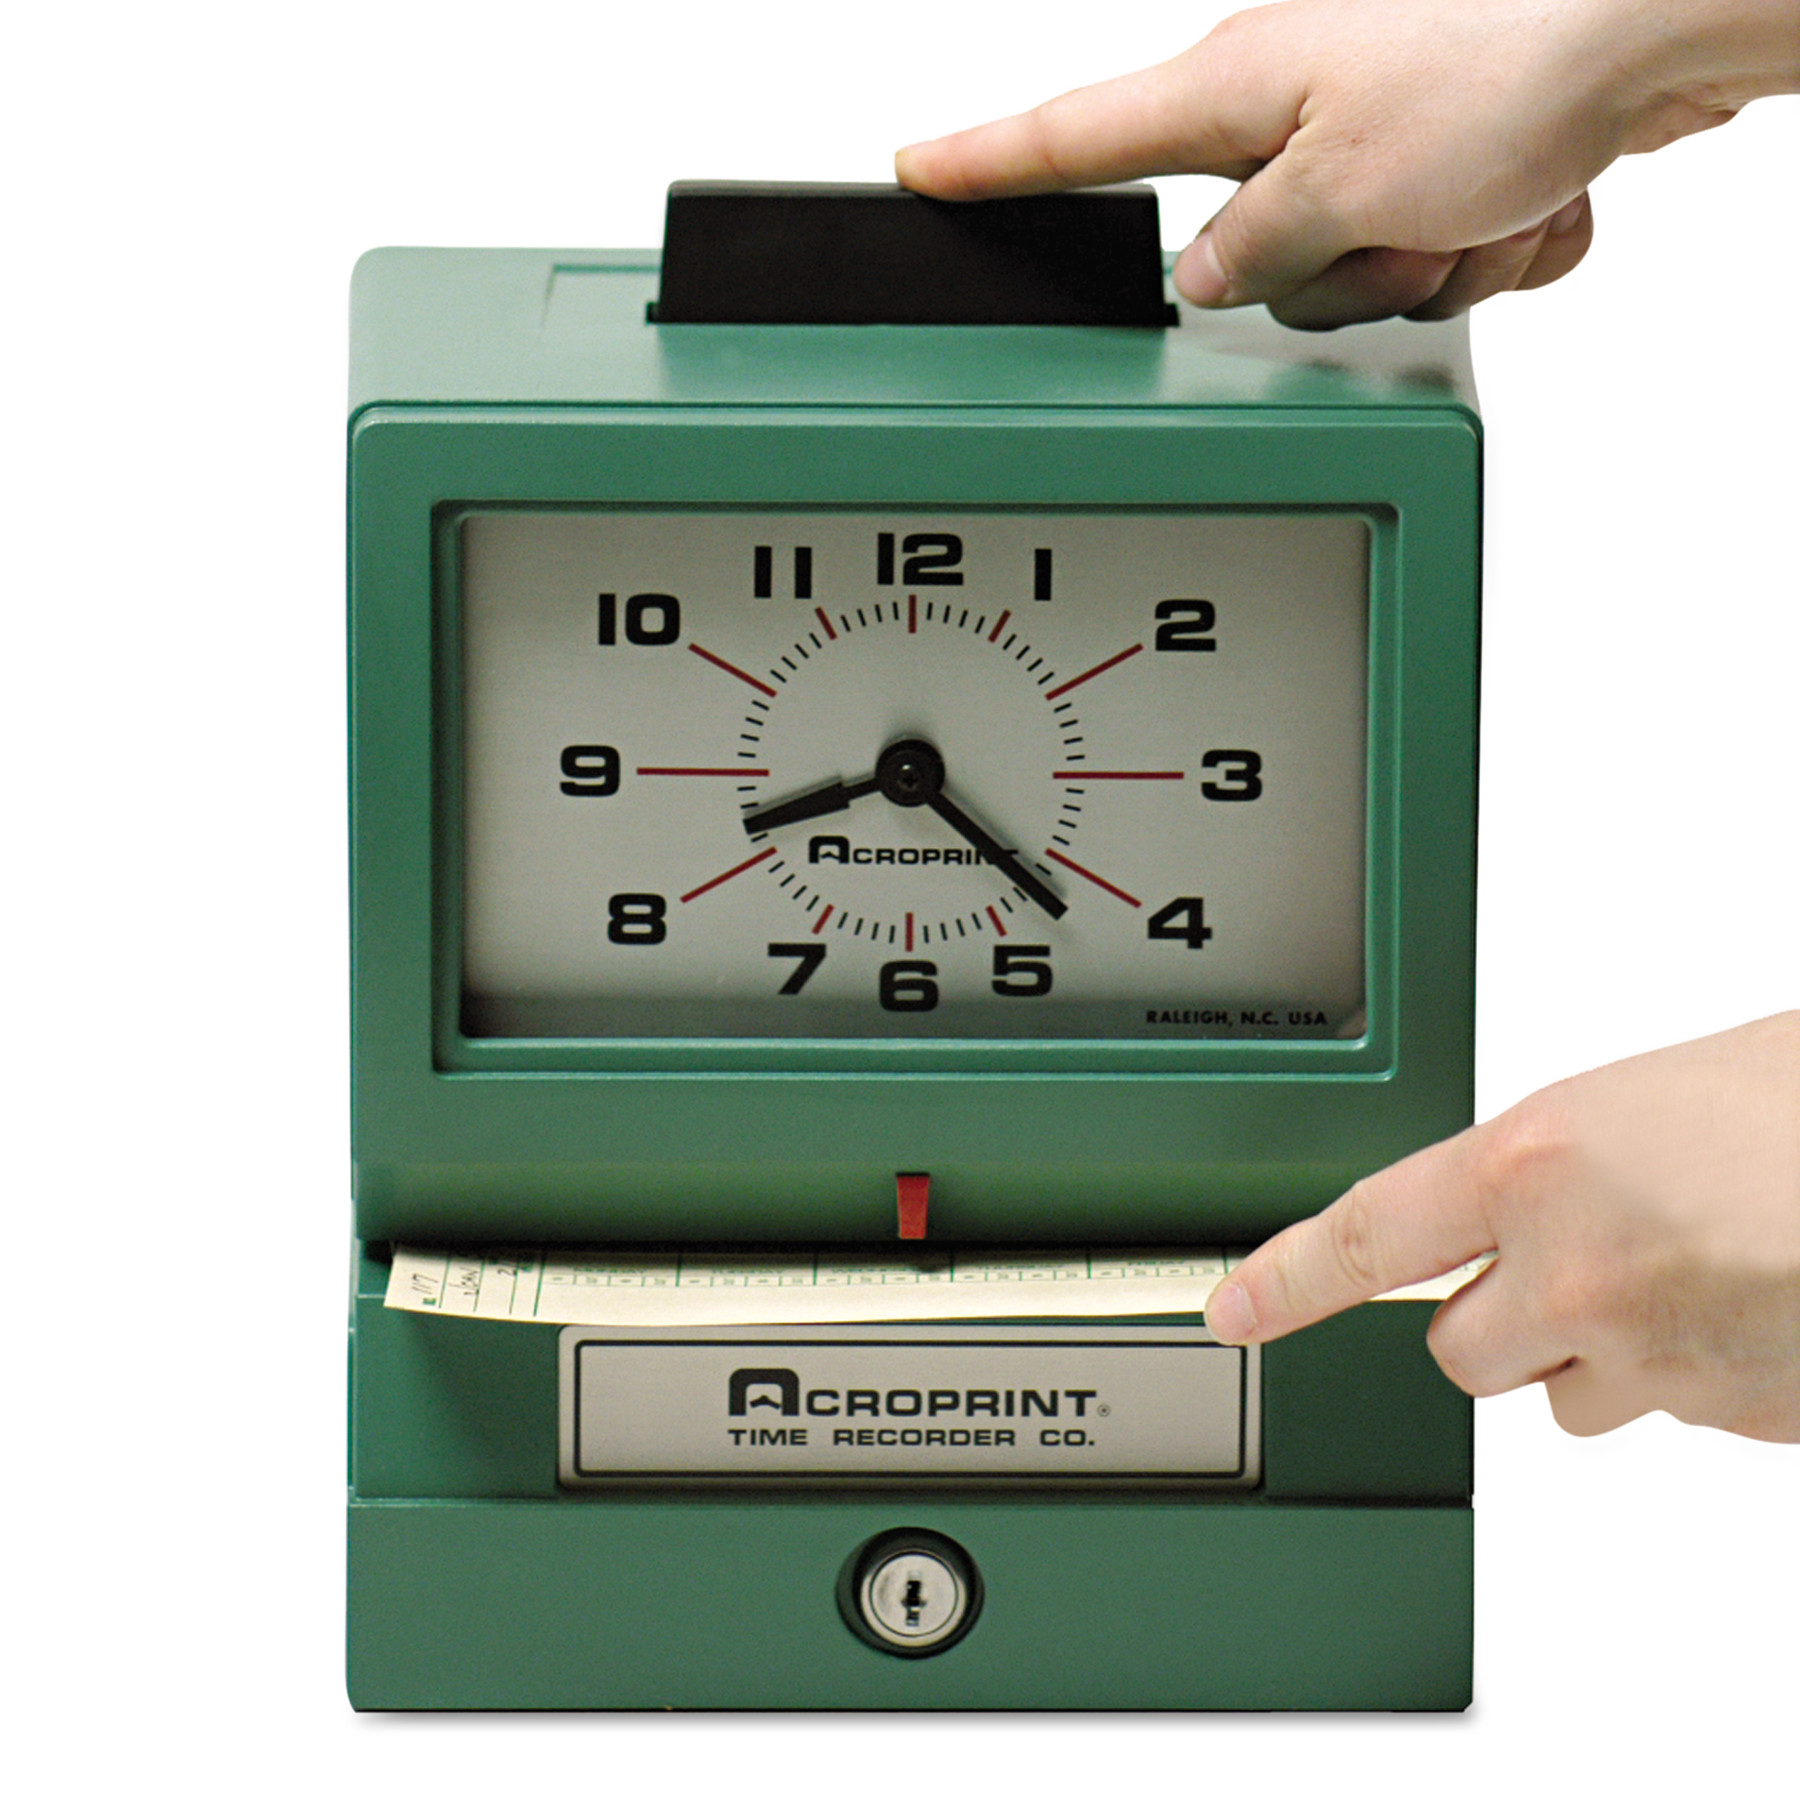 Acroprint Model 125 Analog Manual Print Time Clock with Date/0-12 Hours/Minutes -ACP011070400